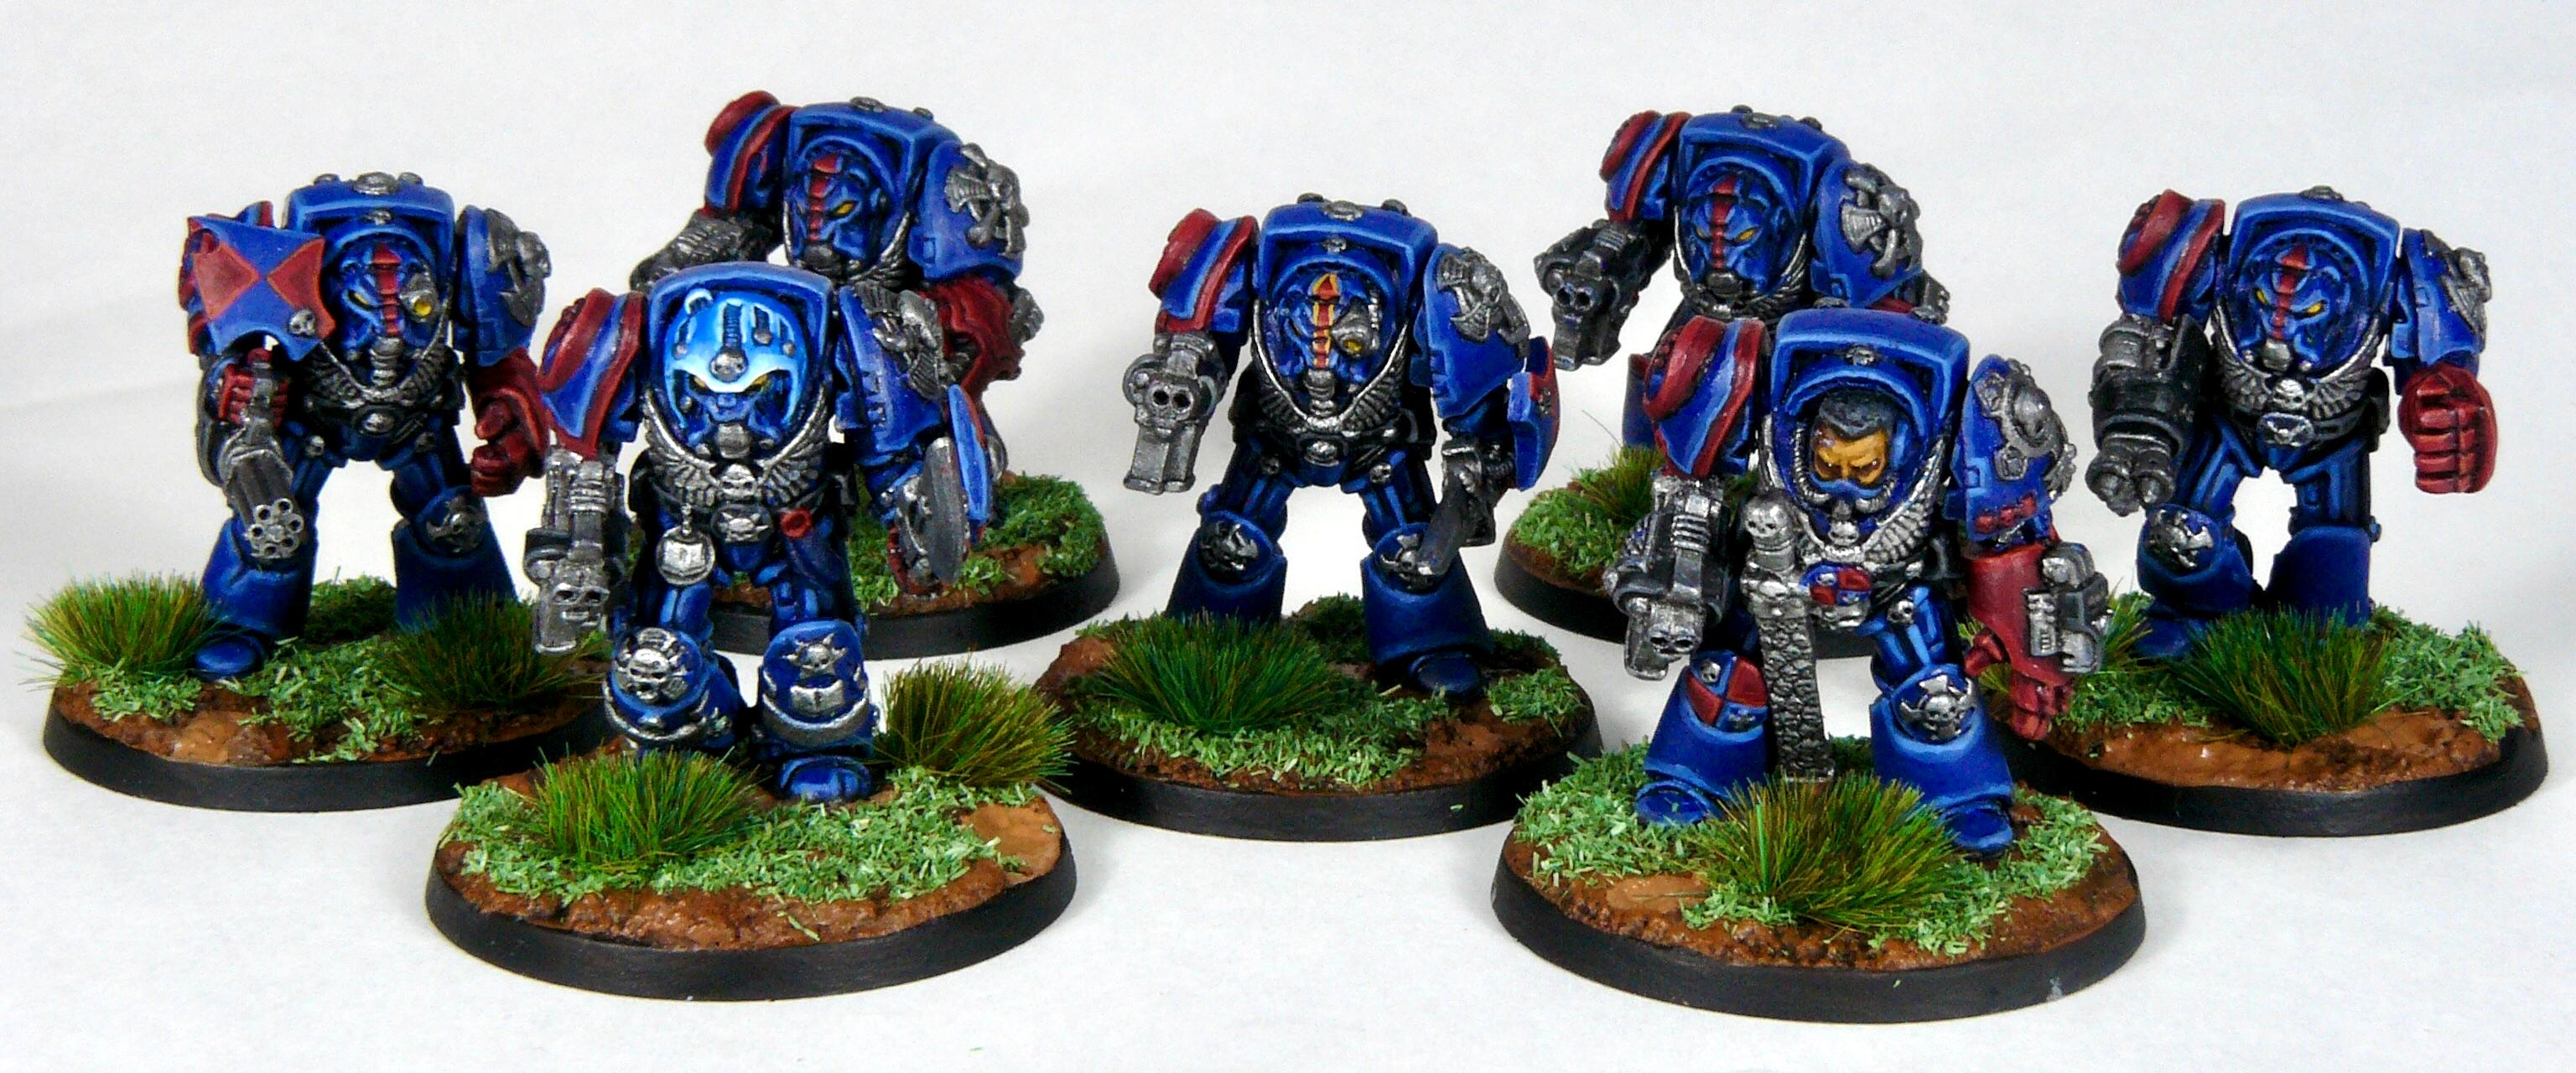 Captain, Crimson Fists, Librarian, Rogue Trader, Rtb9, Space Marines, Terminator Armor, Warhammer 40,000